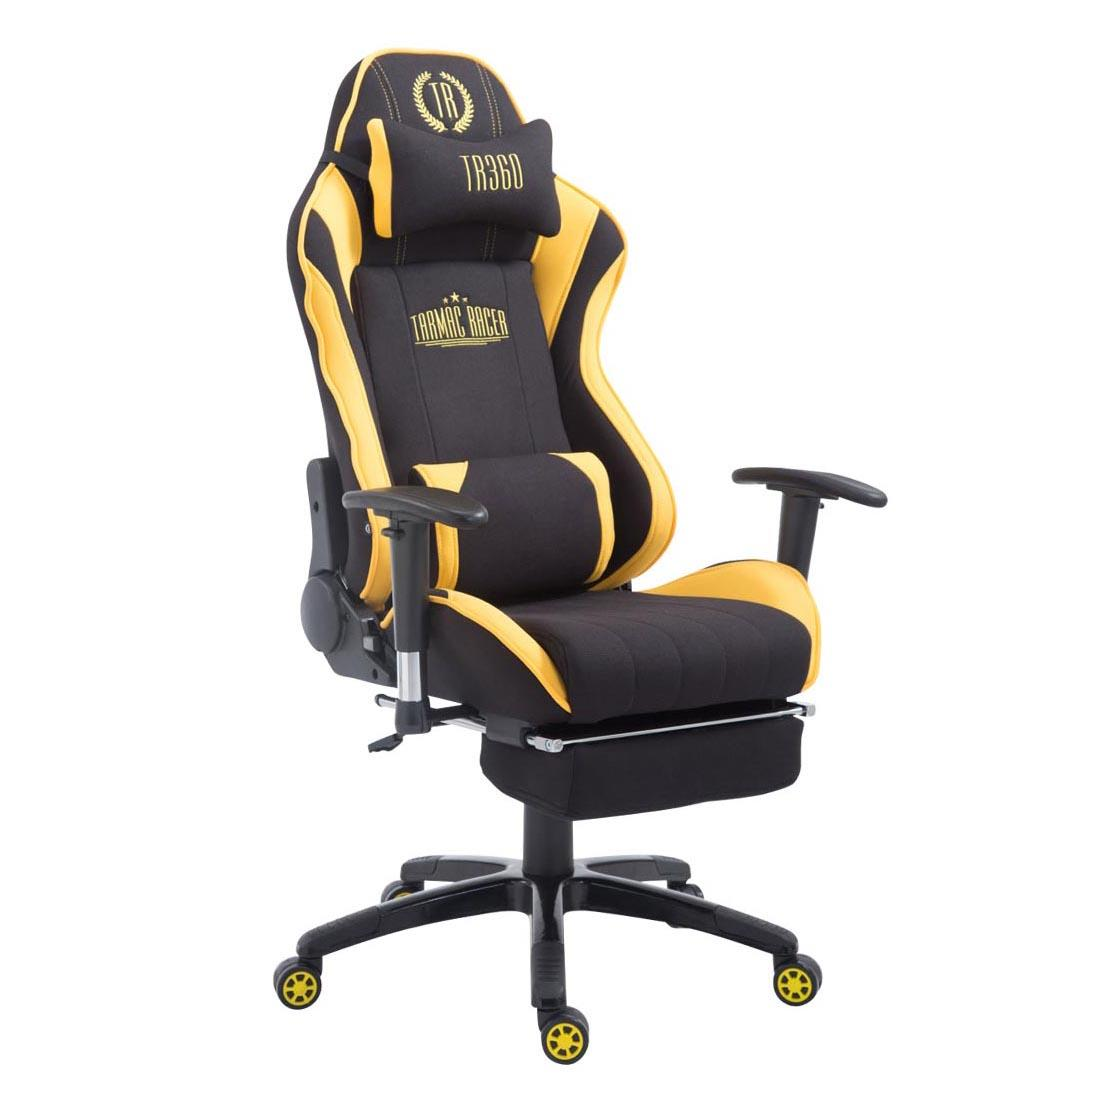 Silla gaming turbo tela con reposapi s reclinable con for Silla gaming con altavoces